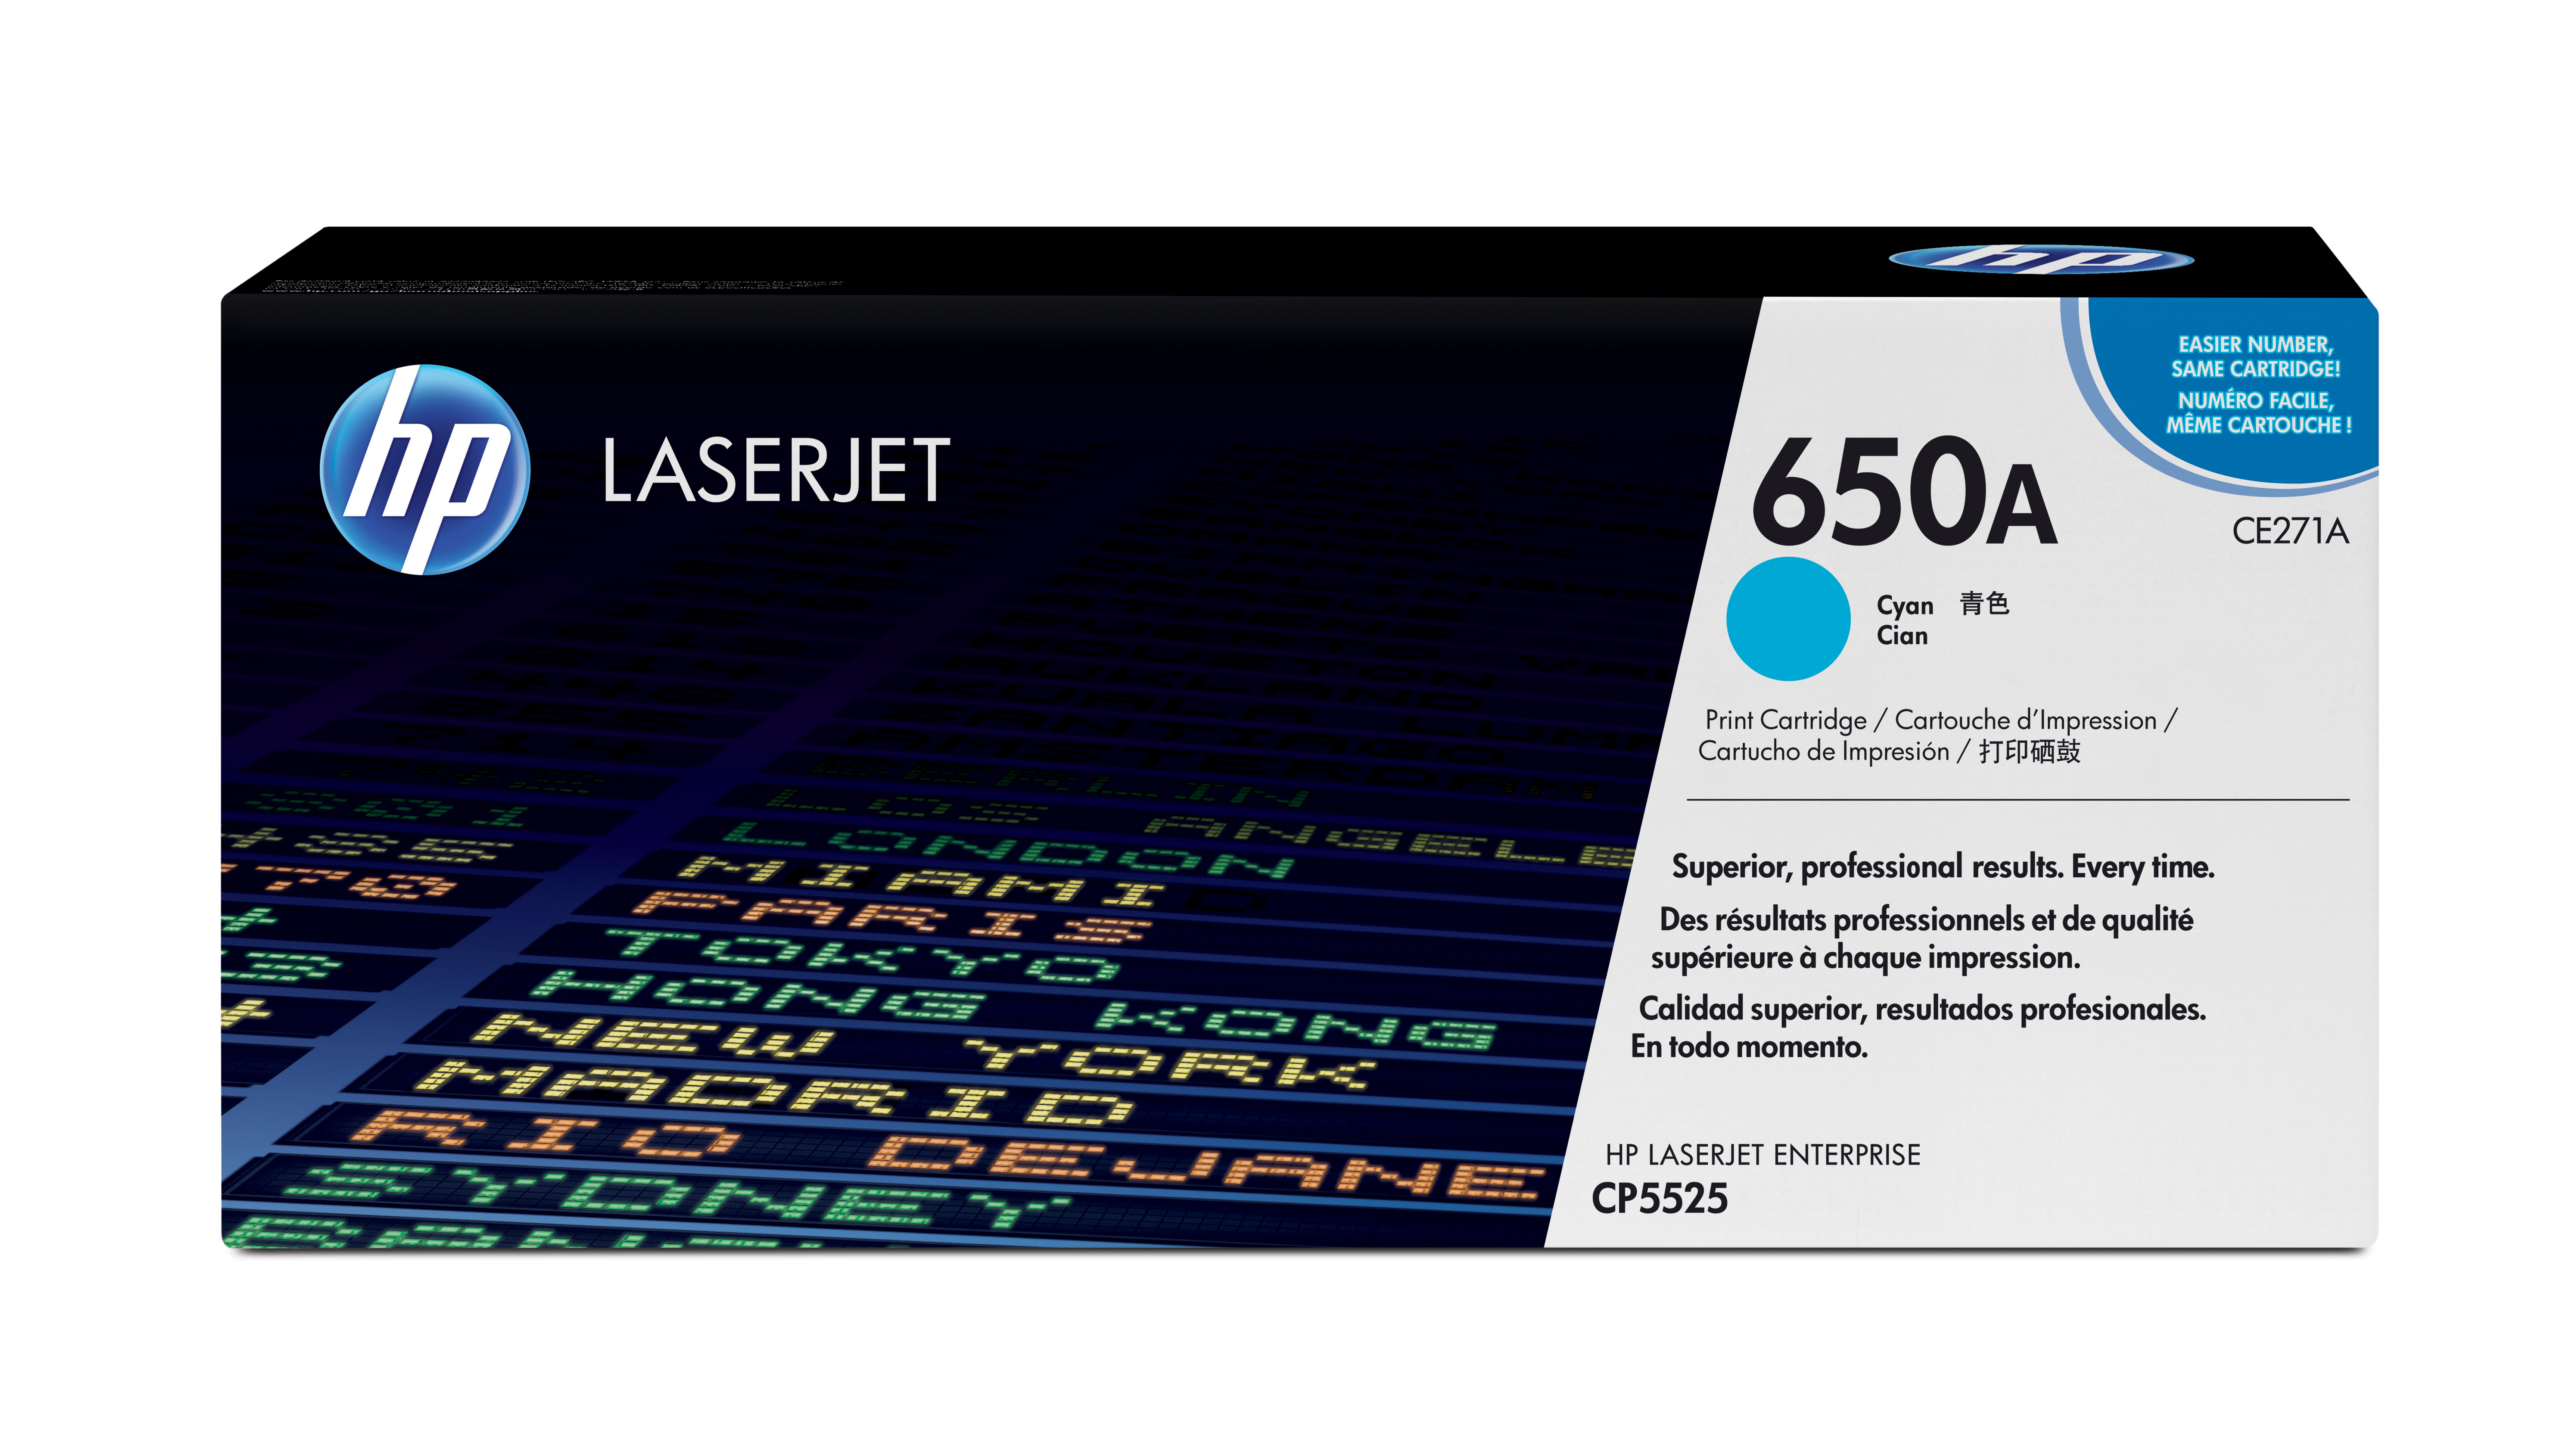 HP 650A Cyan Toner Cartridge CE271A